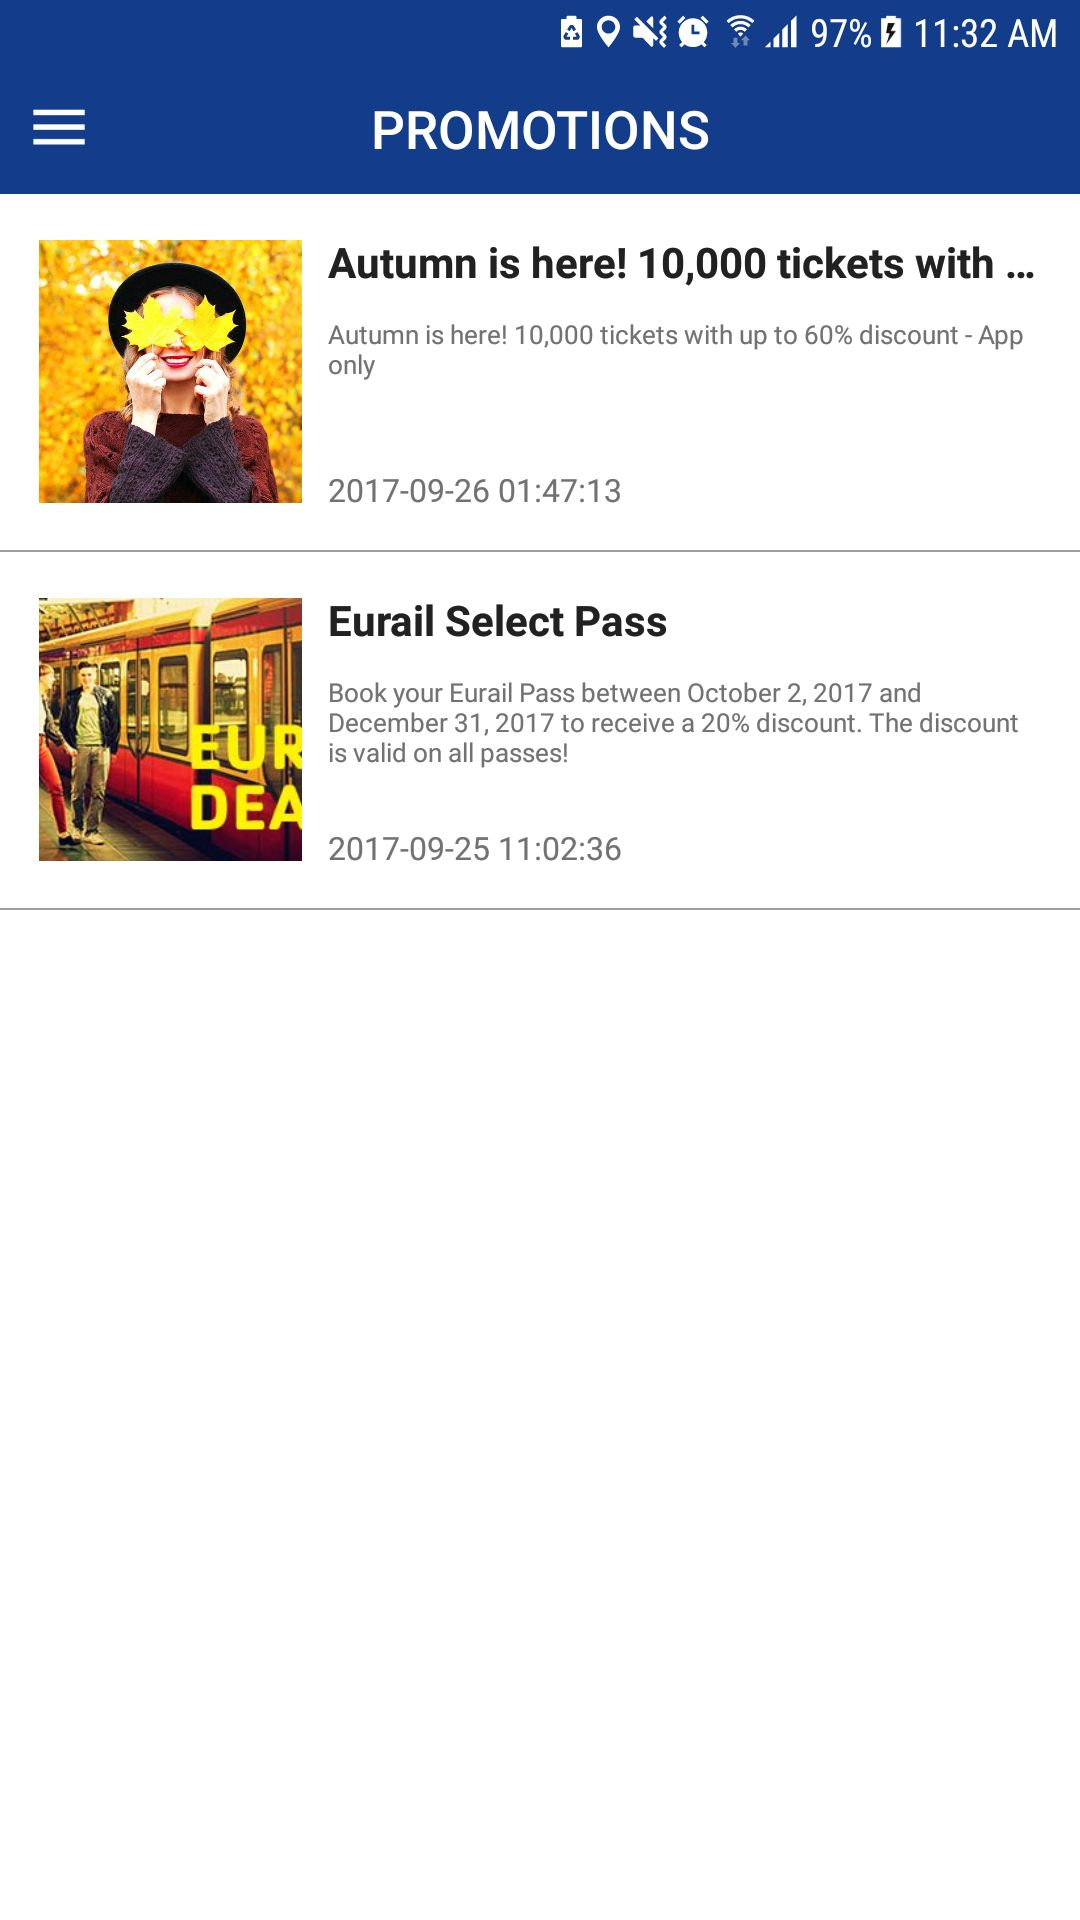 Bus Ticket Booking - Android App Source Code Screenshot 4